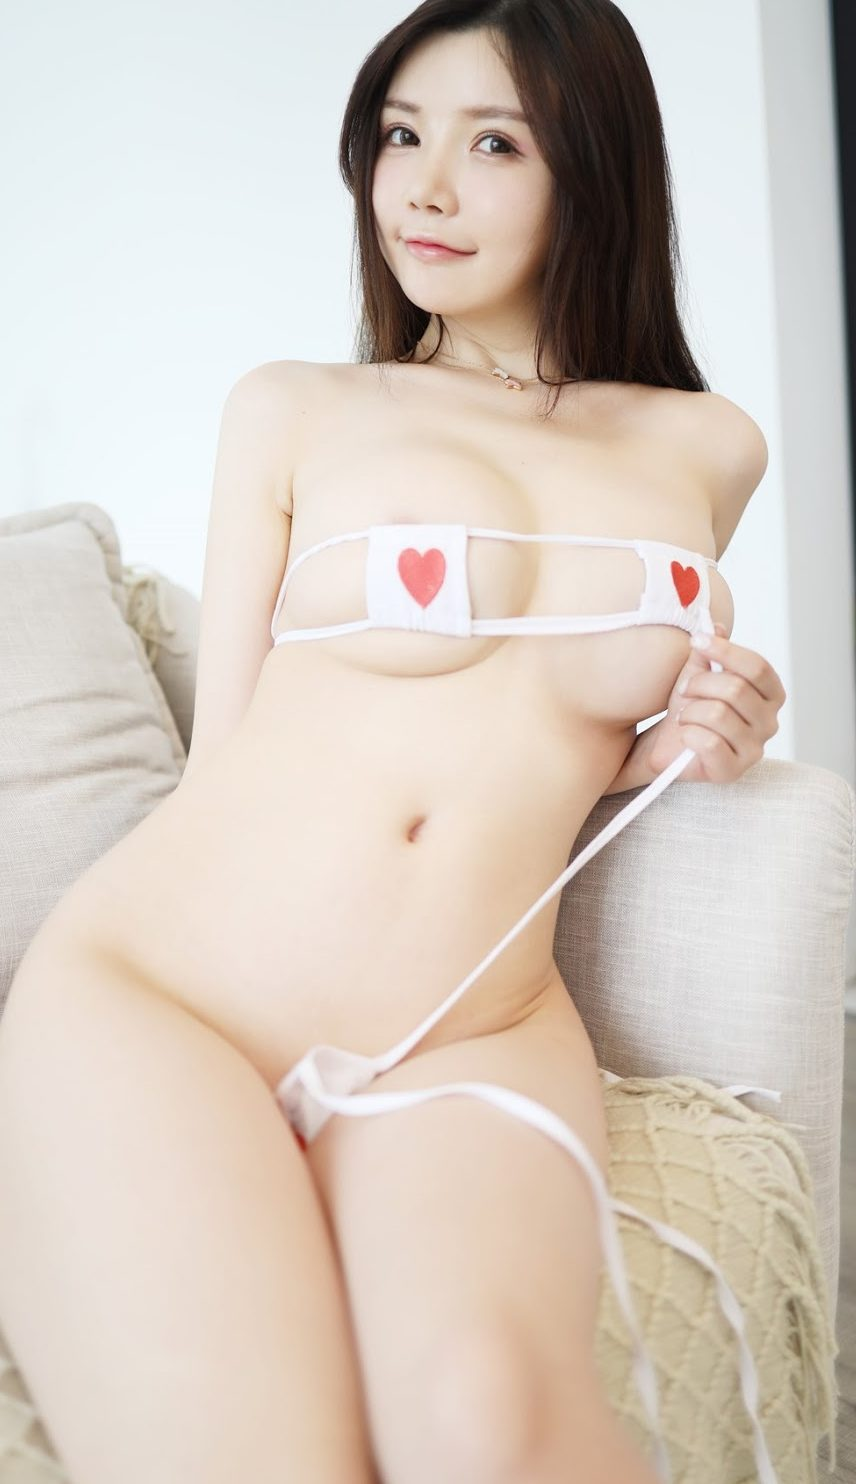 hot asian girl sexy nude wants to fuck her boyfriend rough